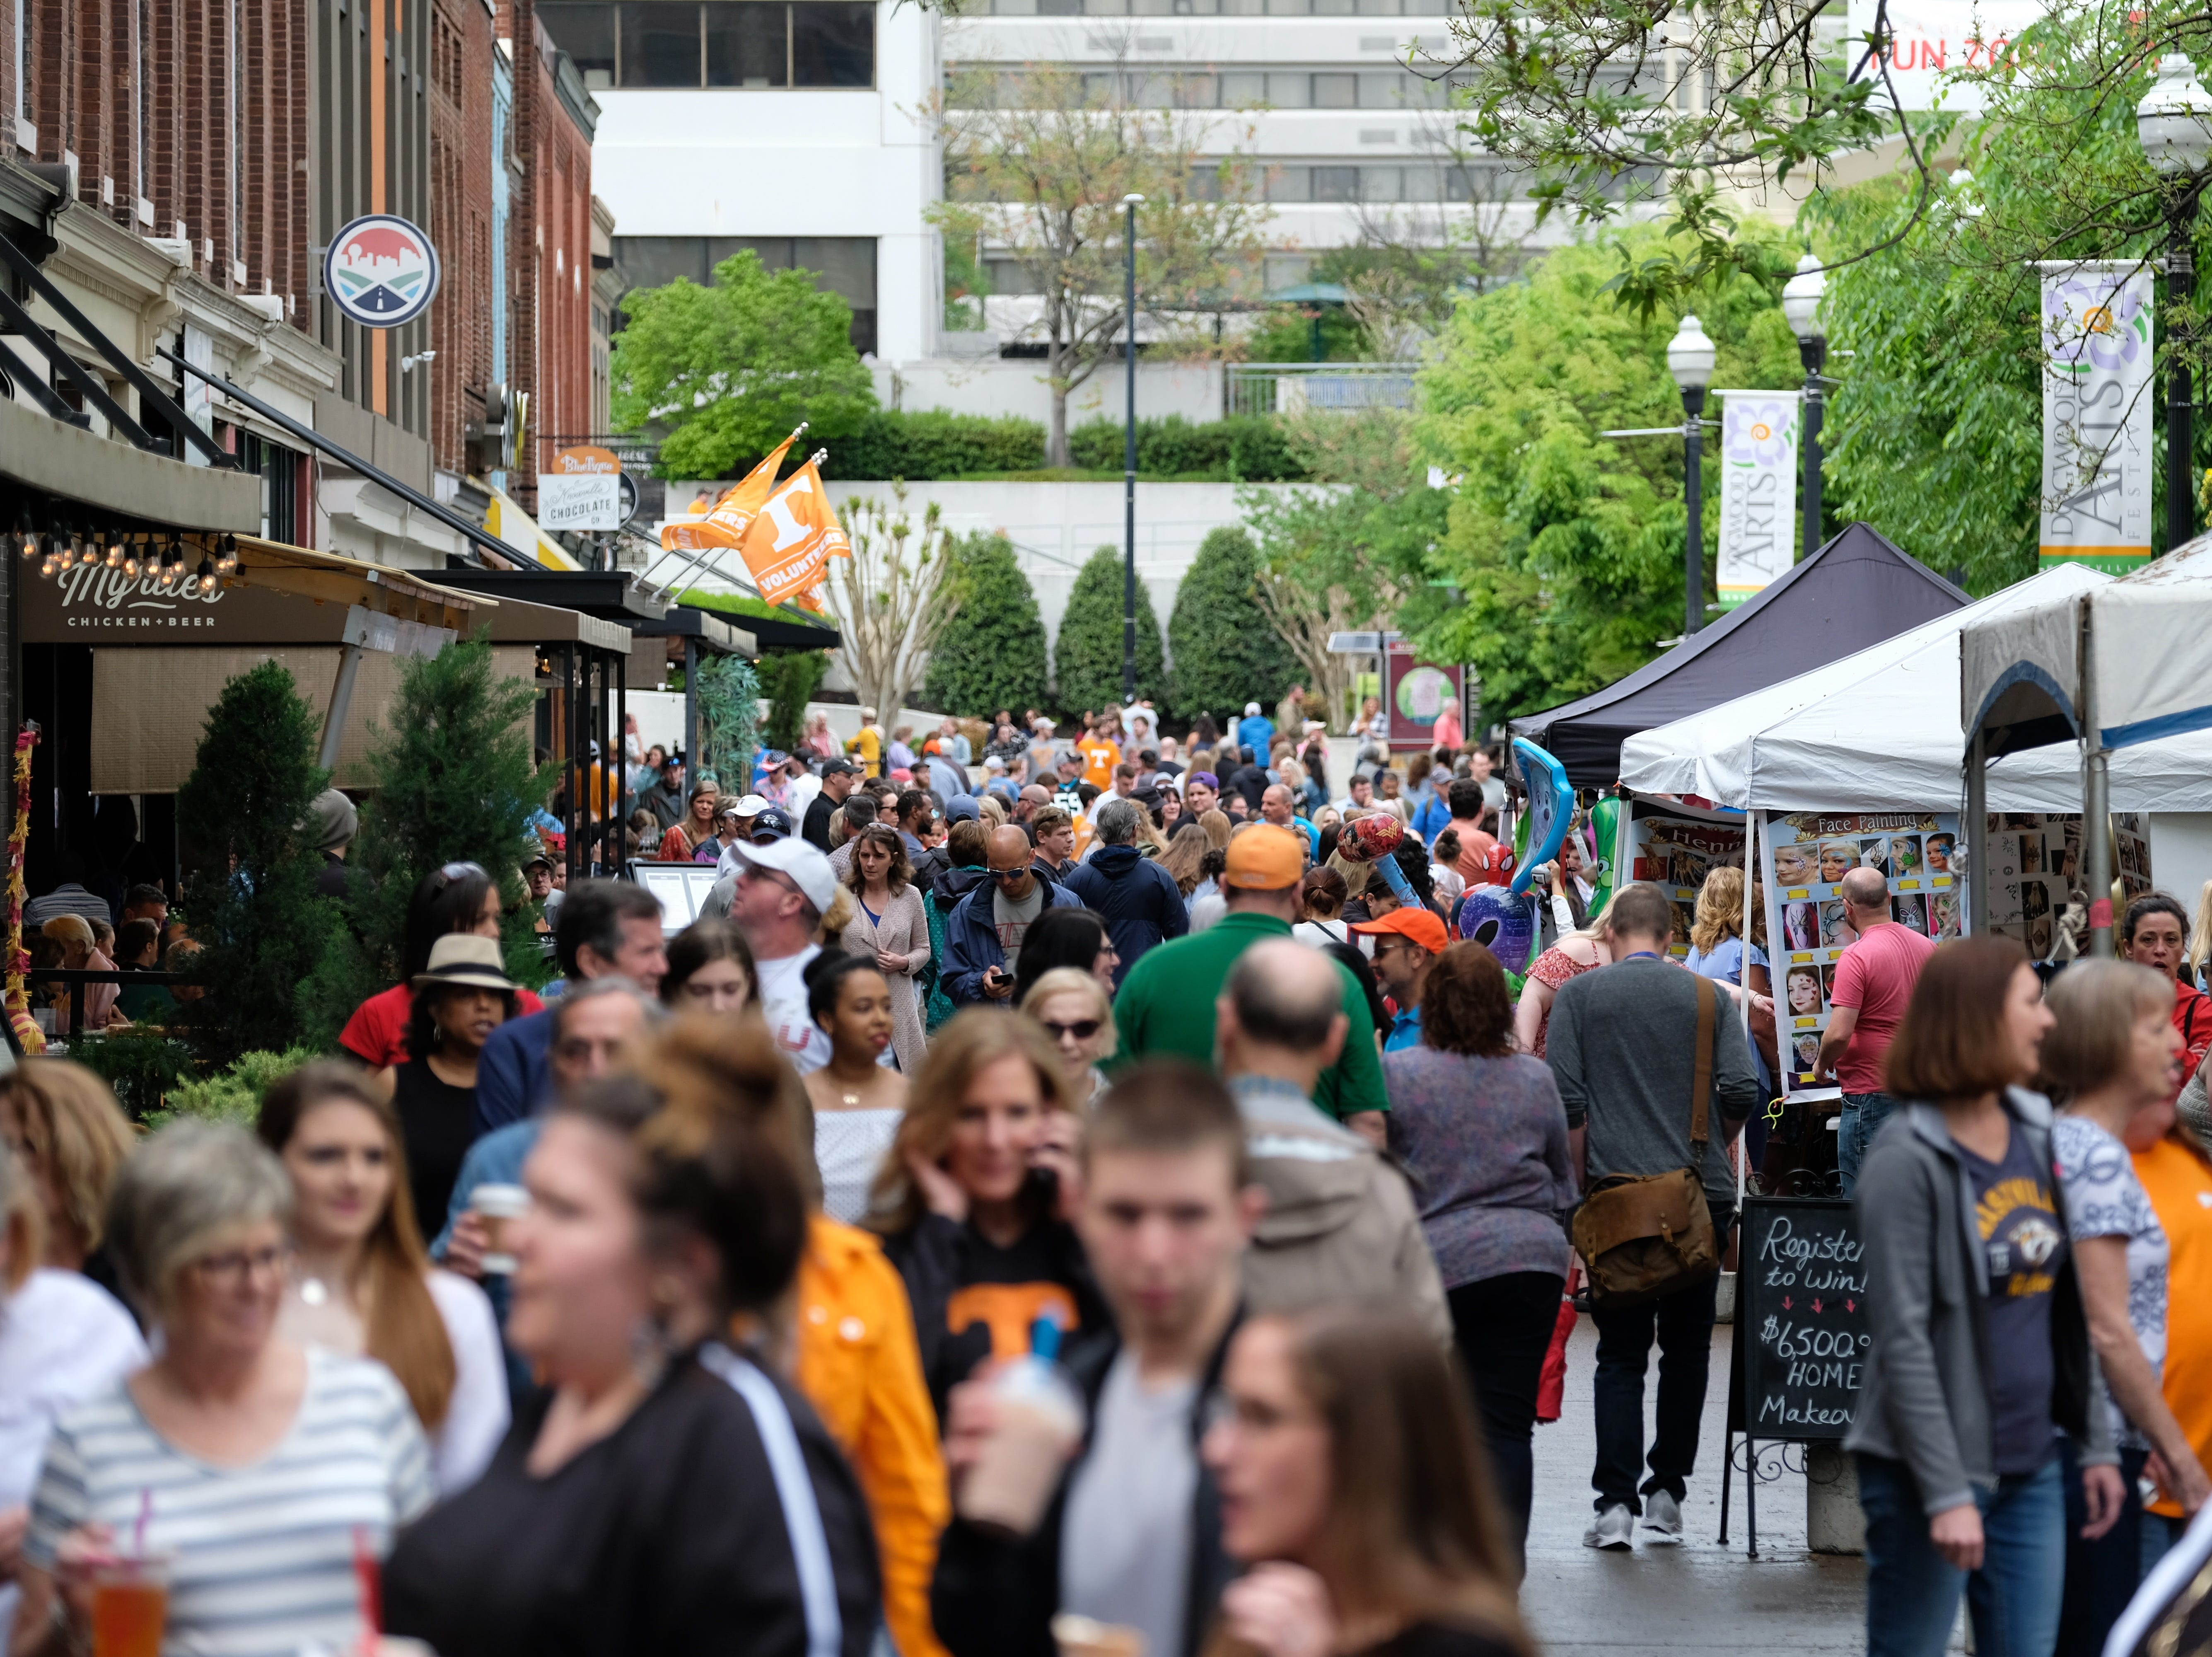 Festival goers make their way through the Rossini Festival in Knoxville on Saturday, April 13, 2019. 